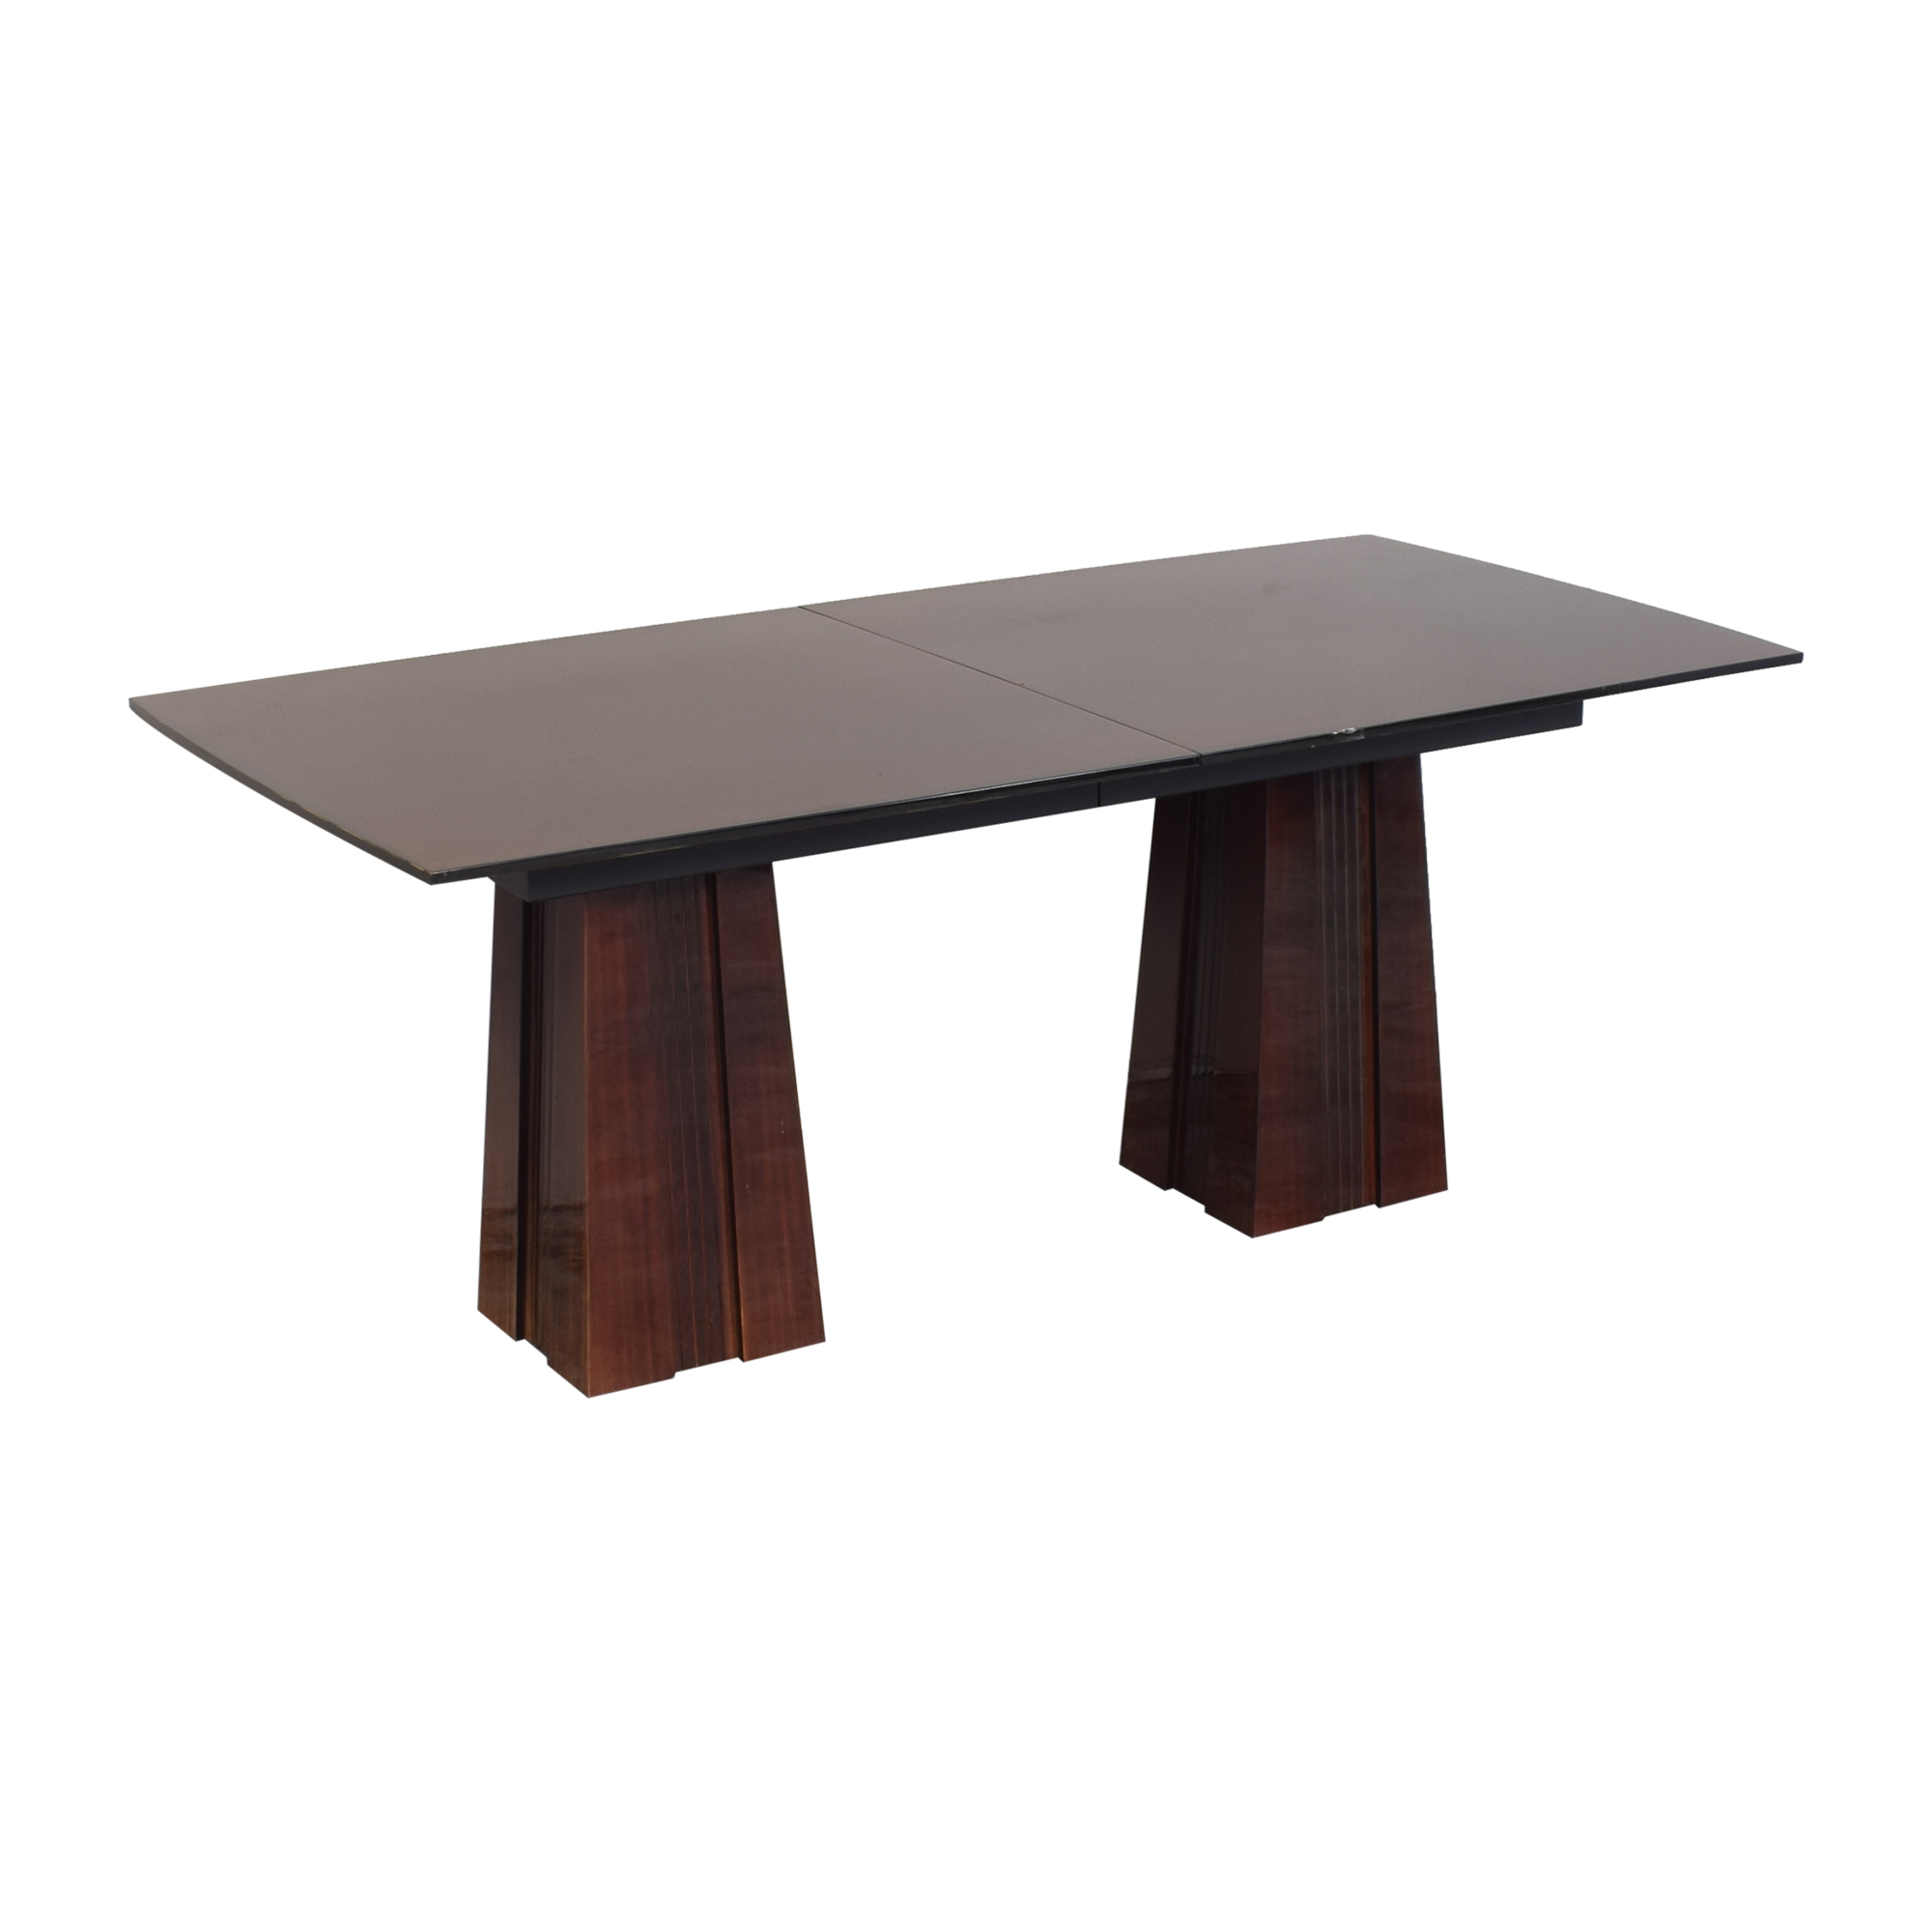 buy Dakota Jackson Dakota Jackson Ariel Collection Dining Table online